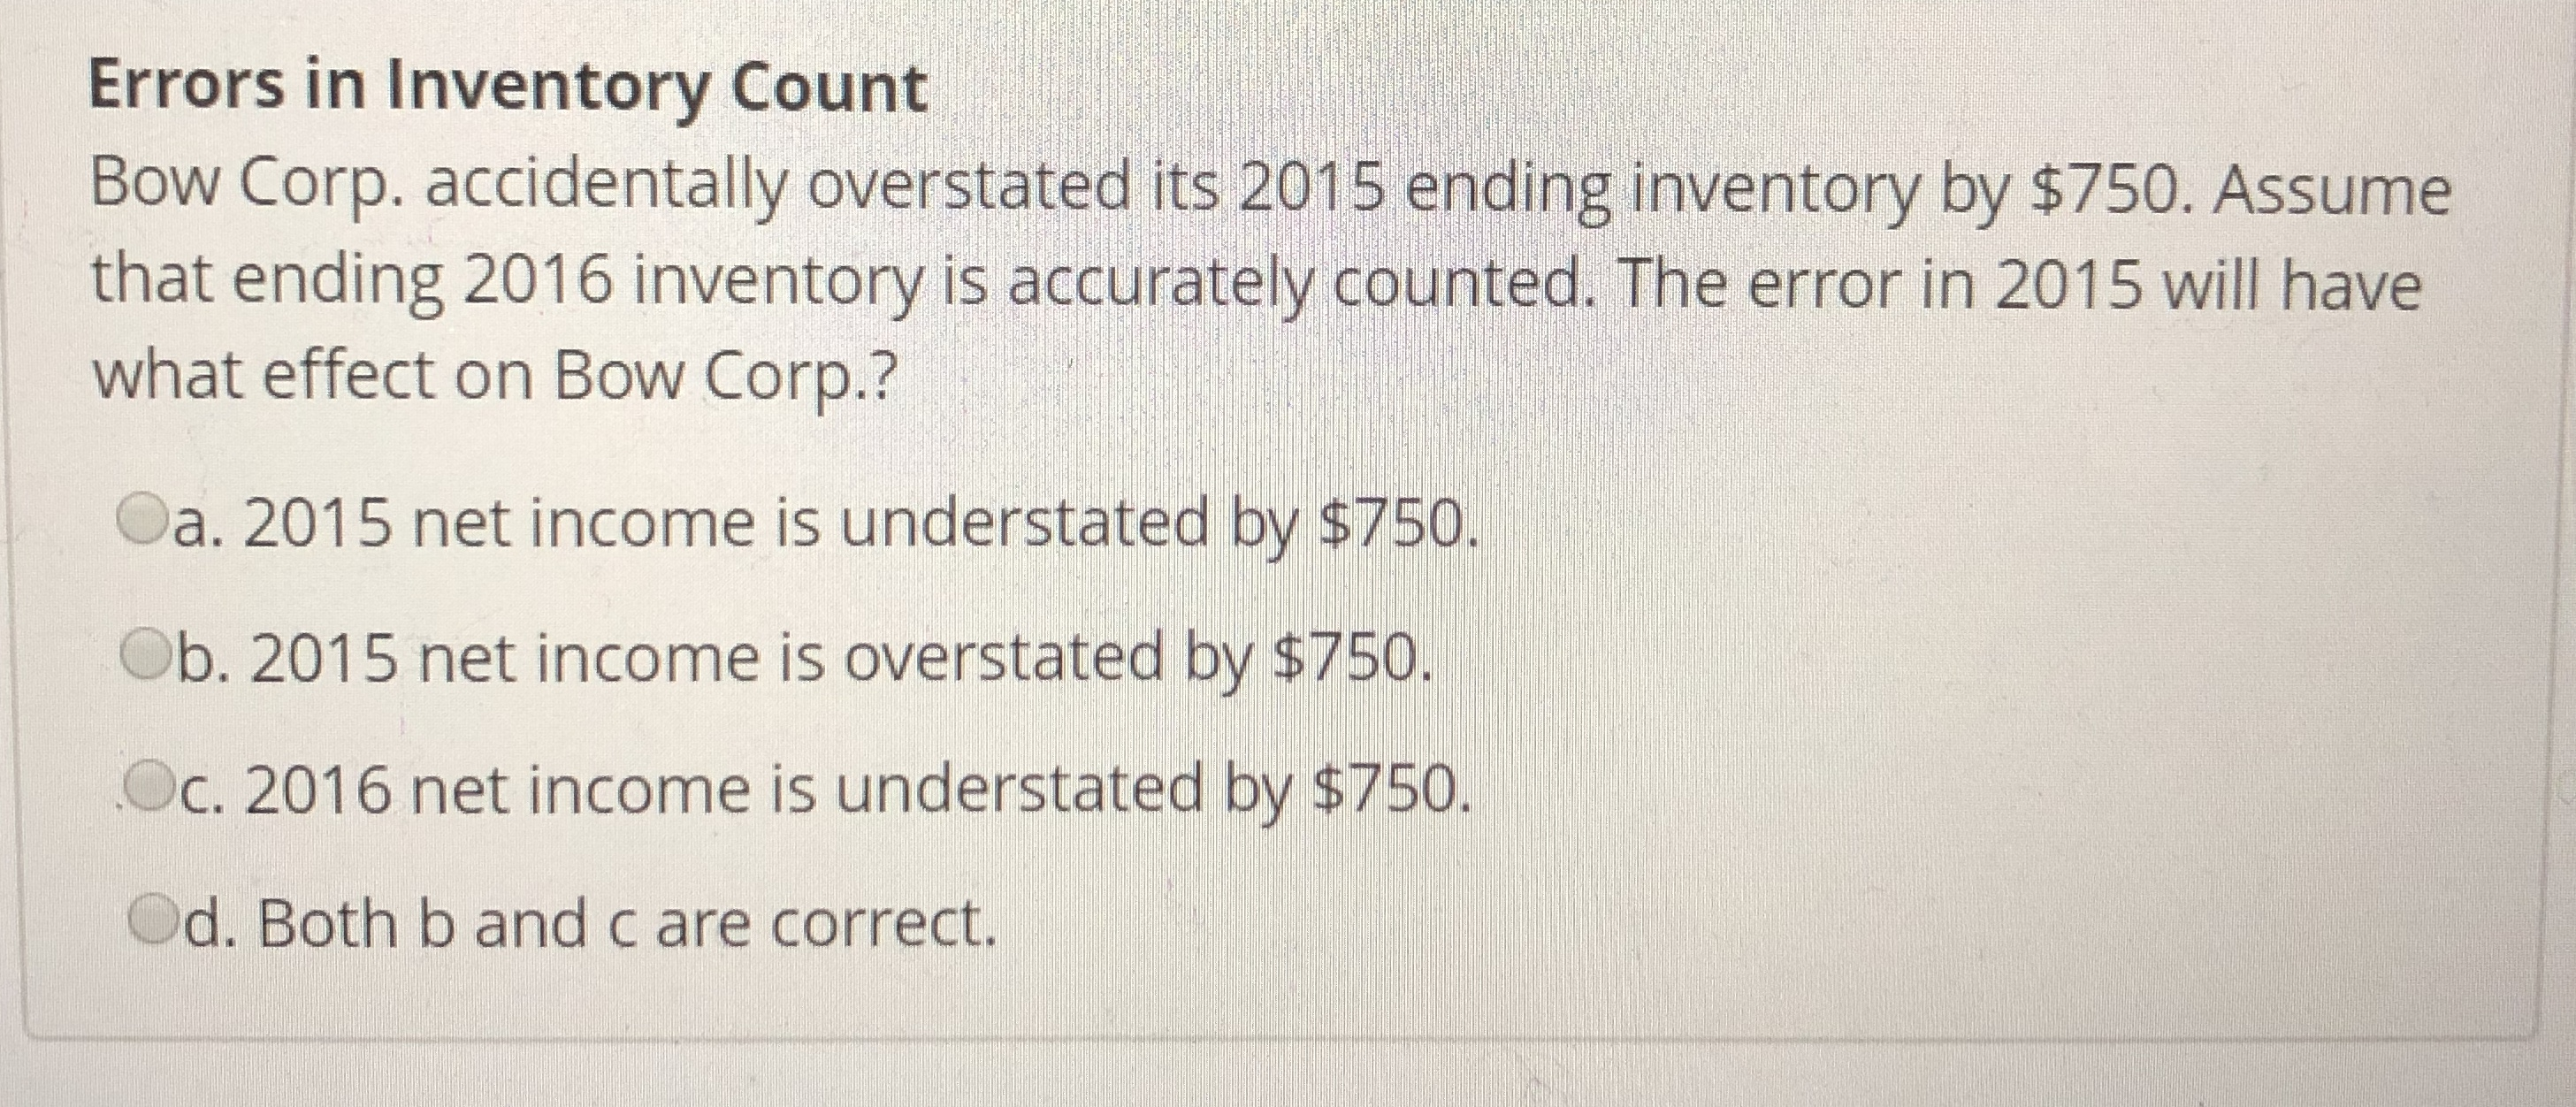 Errors in Inventory Count Bow Corp. accidentally overstated its 2015 ending inventory by $750. Assume that ending 2016 inventory is accurately counted. The error in 2015 will have what effect on Bow Corp.? Oa. 2015 net income is understated by $750 Ob. 2015 net income is overstated by $750. Oc, 2016 net income is understated by $750. Od. Both b and c are correct.